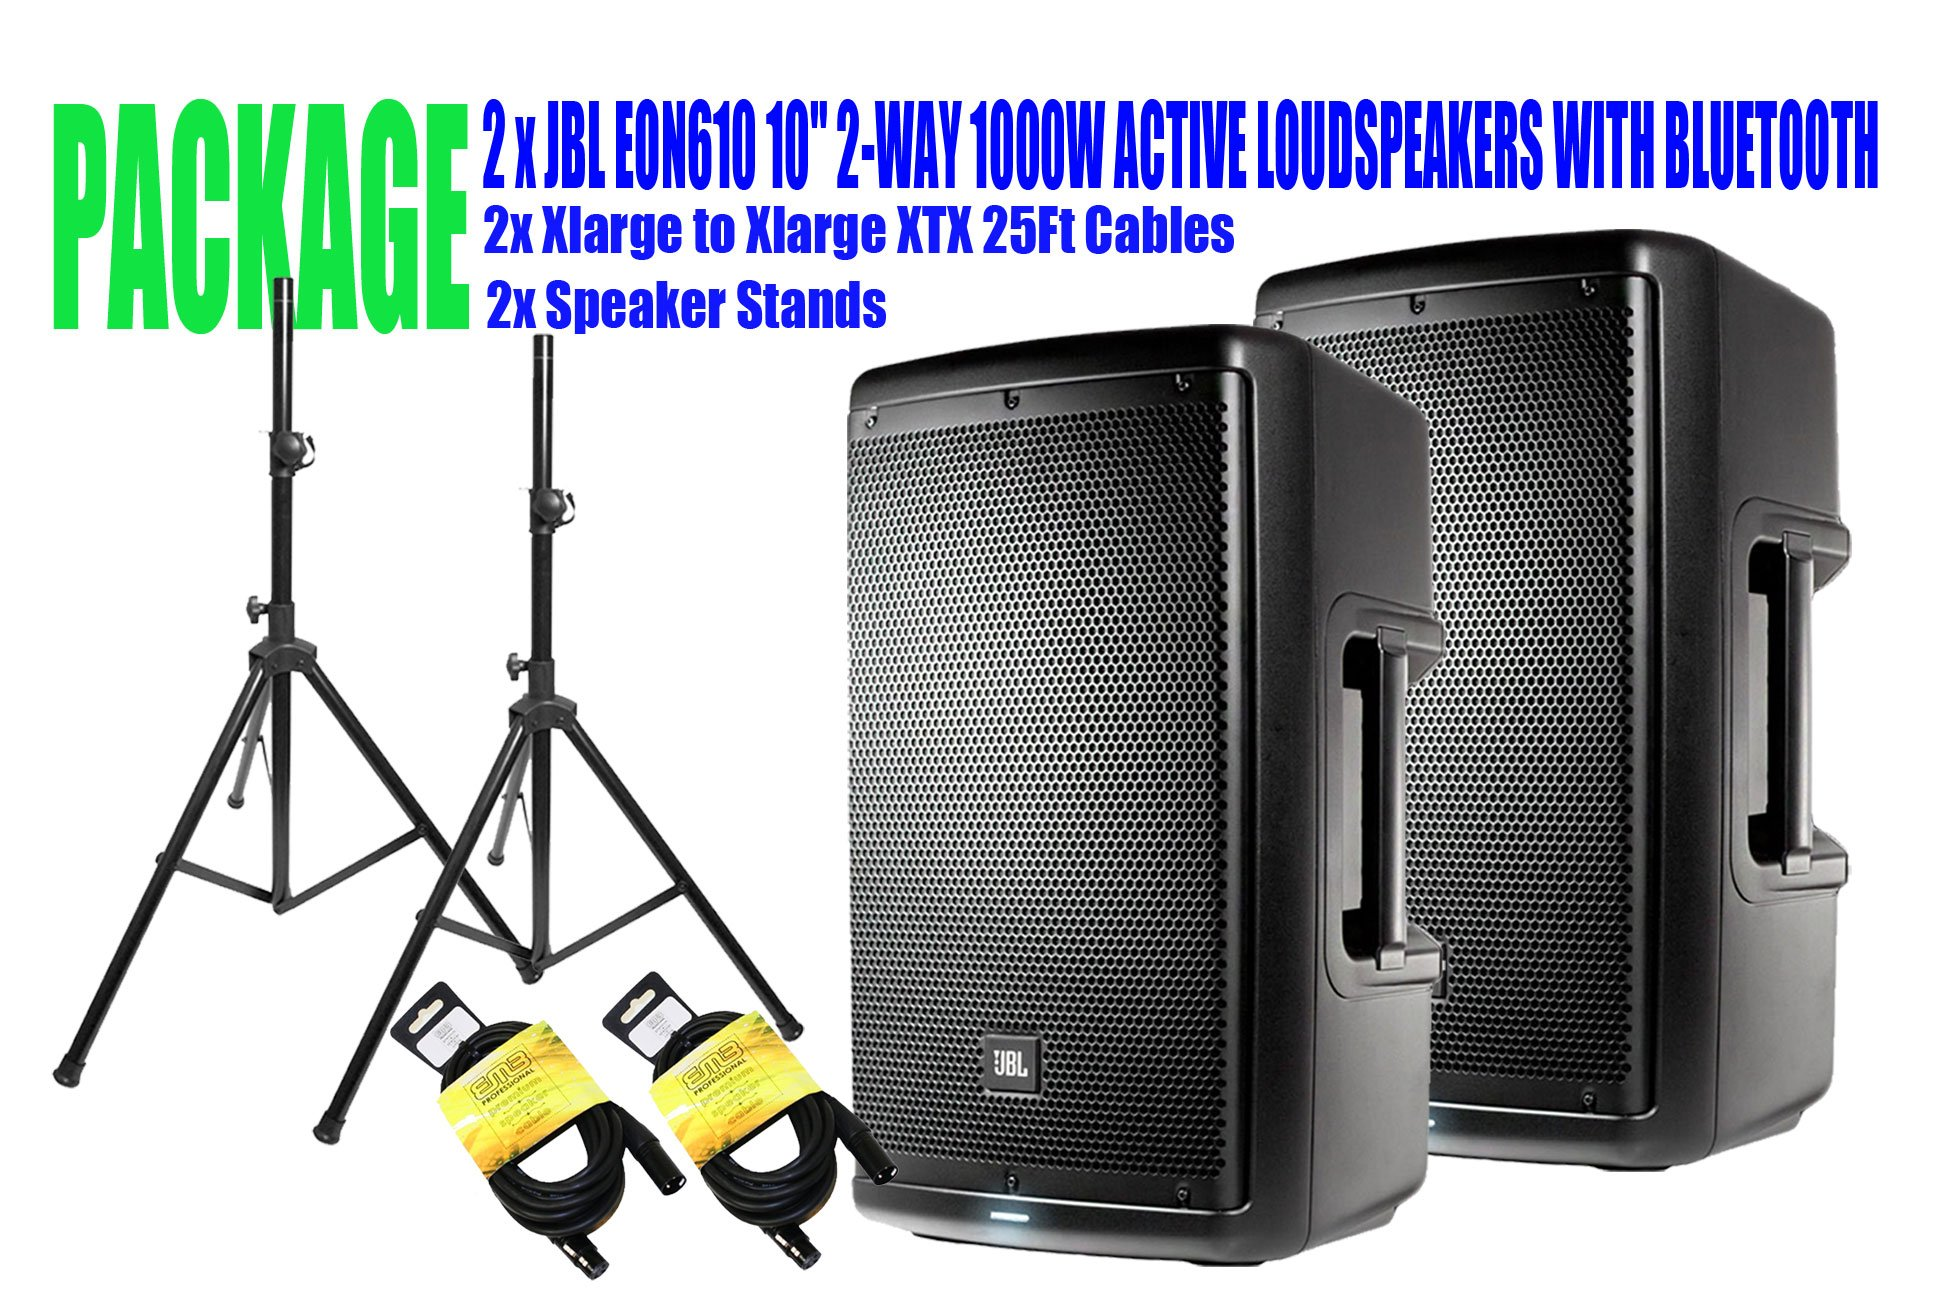 PACKAGE! 2 x JBL EON610 10'' 2-WAY 1000W ACTIVE LOUDSPEAKERS WITH BLUETOOTH + 2x SPEAKER STANDS +2x XLARGE TO XLARGE XTX 25FT CABLES by JBL